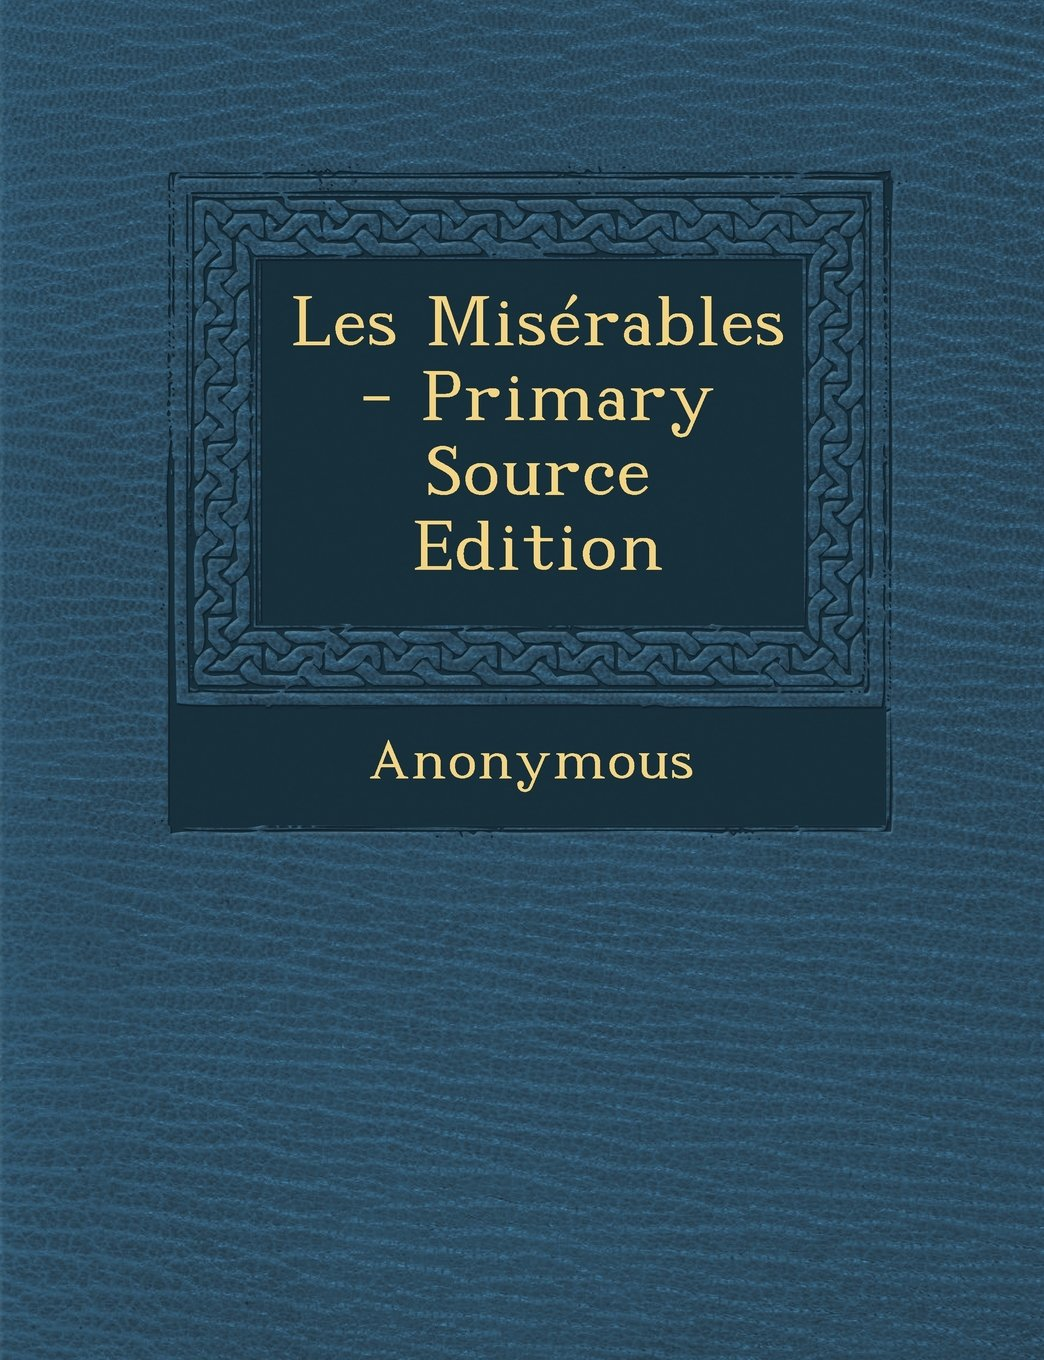 Les Misérables - Primary Source Edition (French Edition) ebook